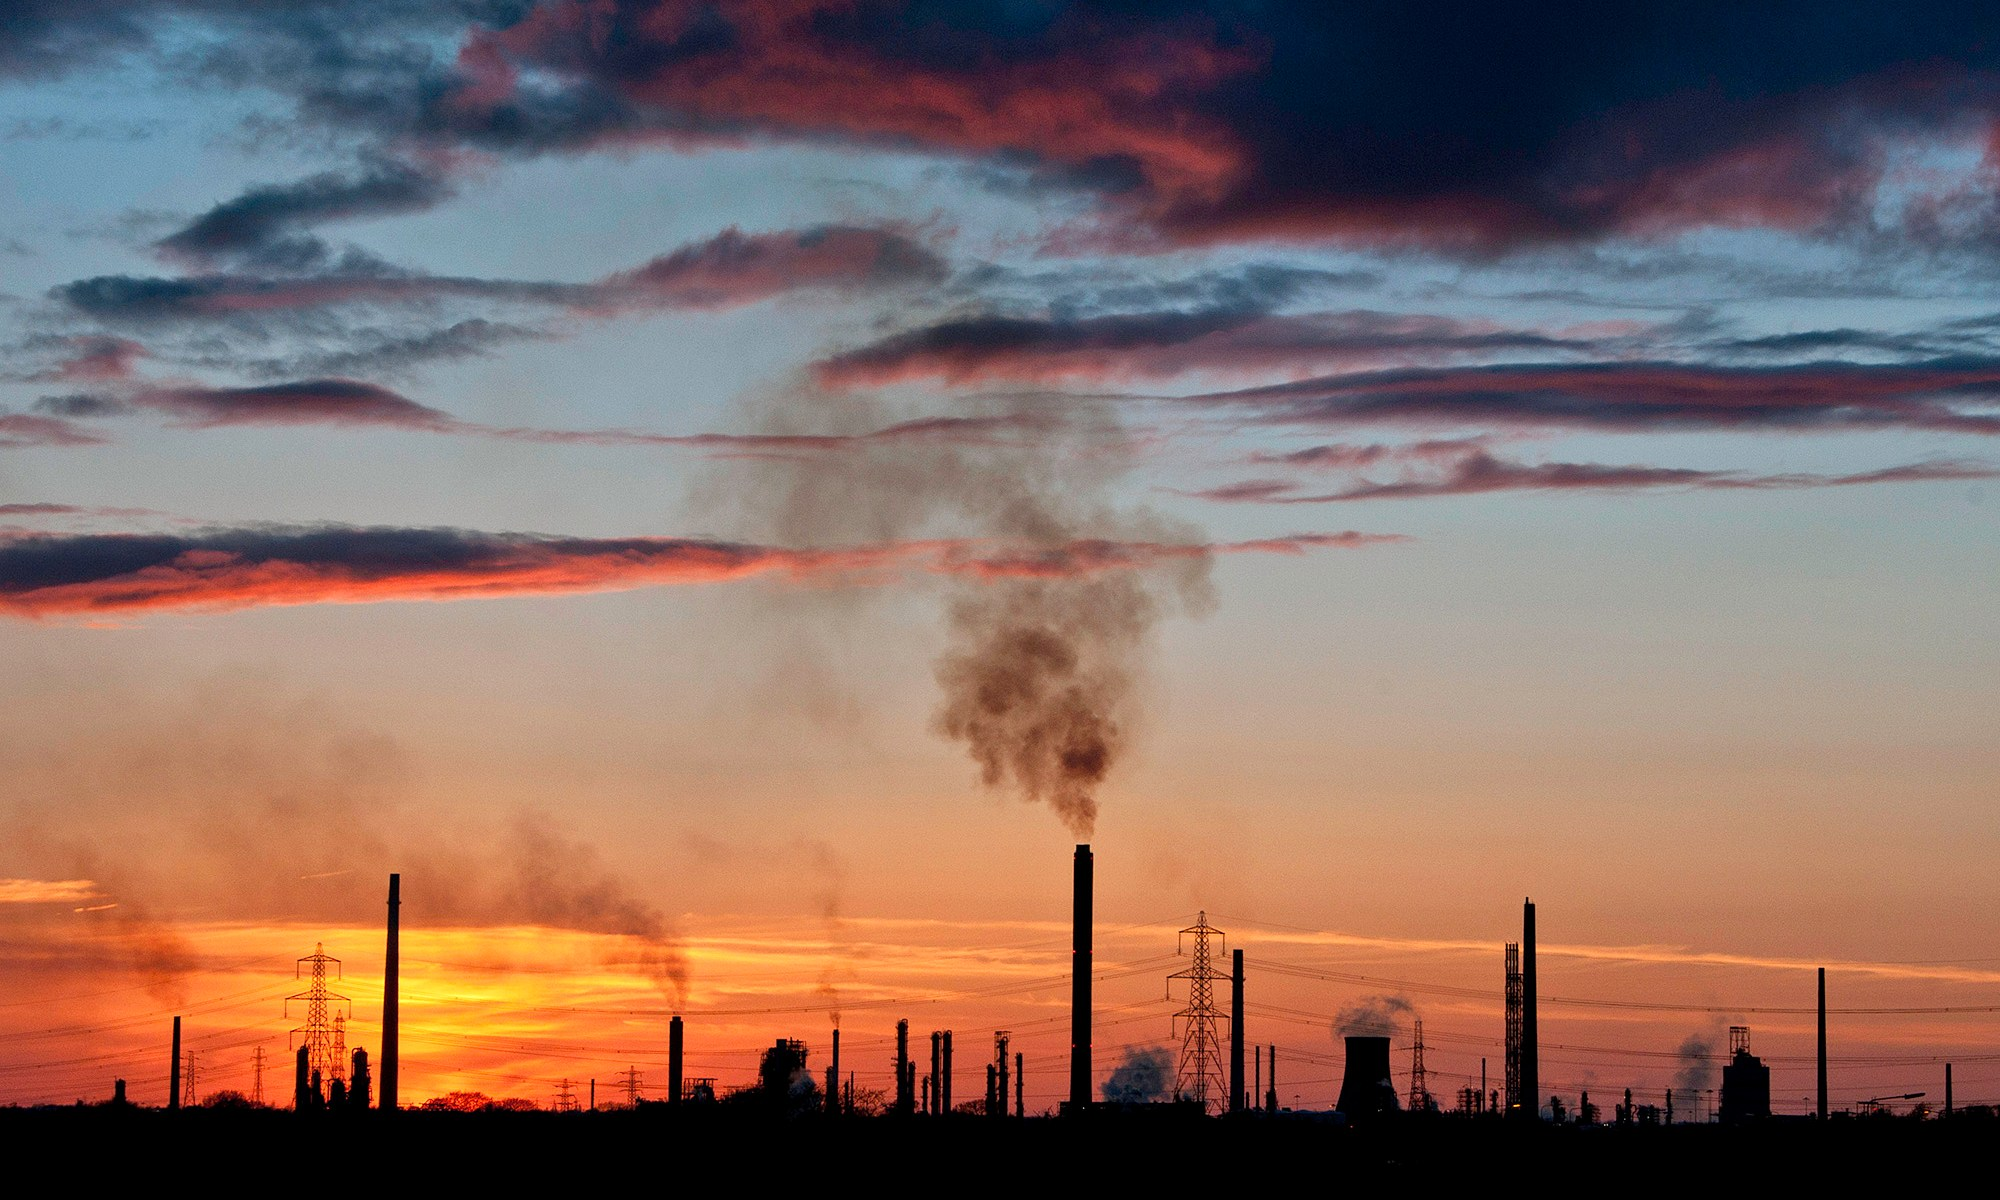 Sunset over Stanlow Refinery